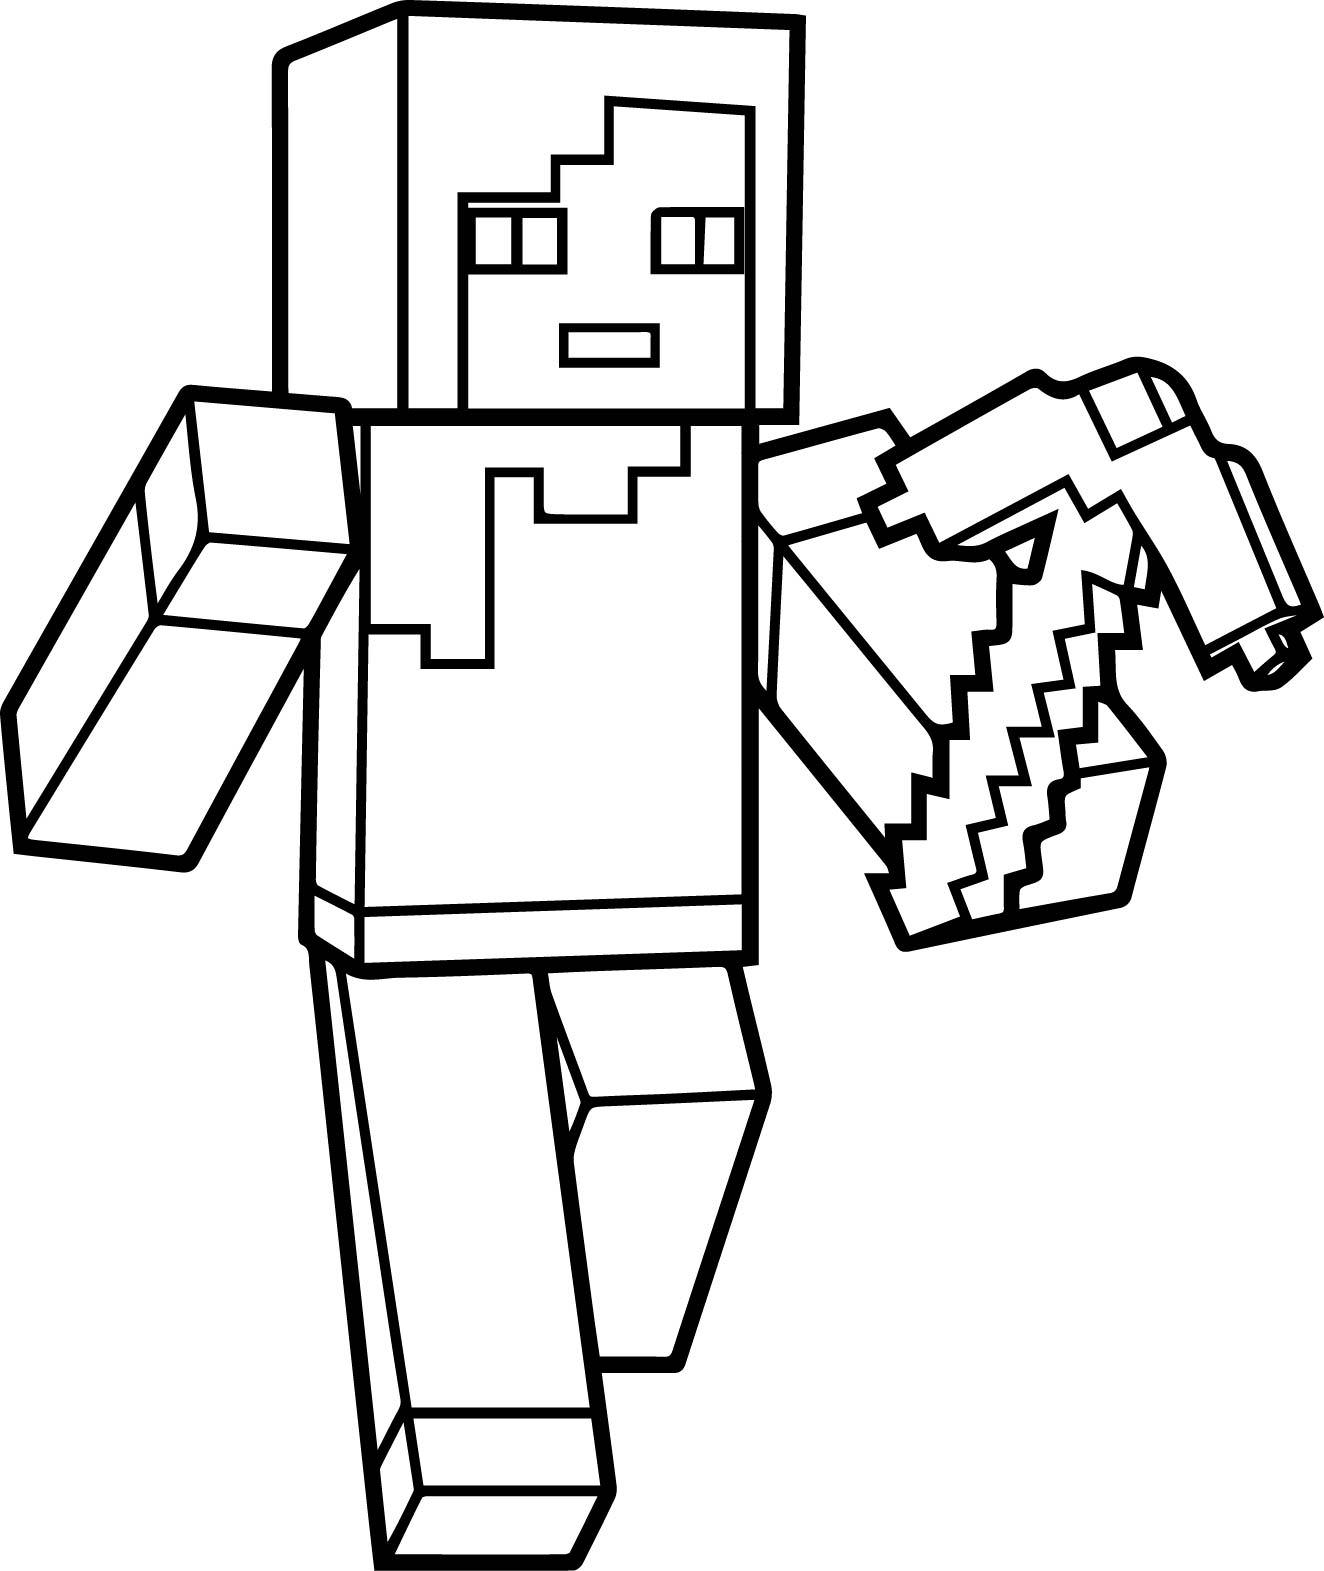 1324x1571 Minecraft Girl Skin Coloring Pages